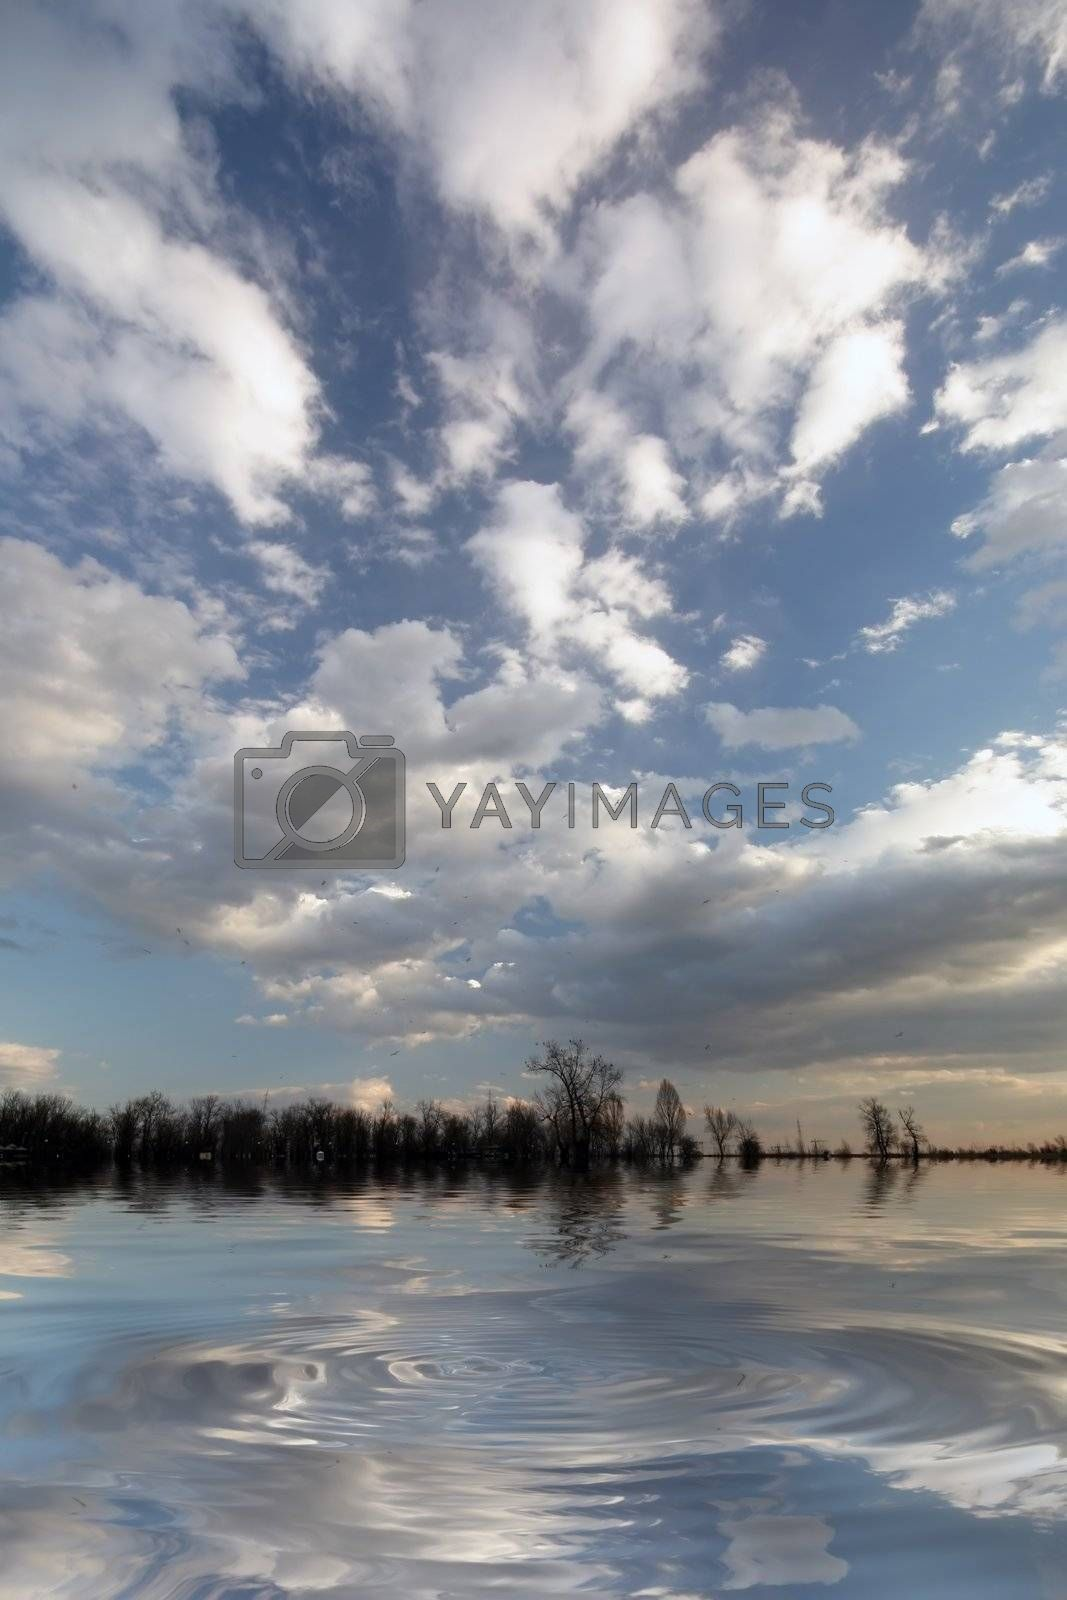 Beautiful sky with clouds and reflection